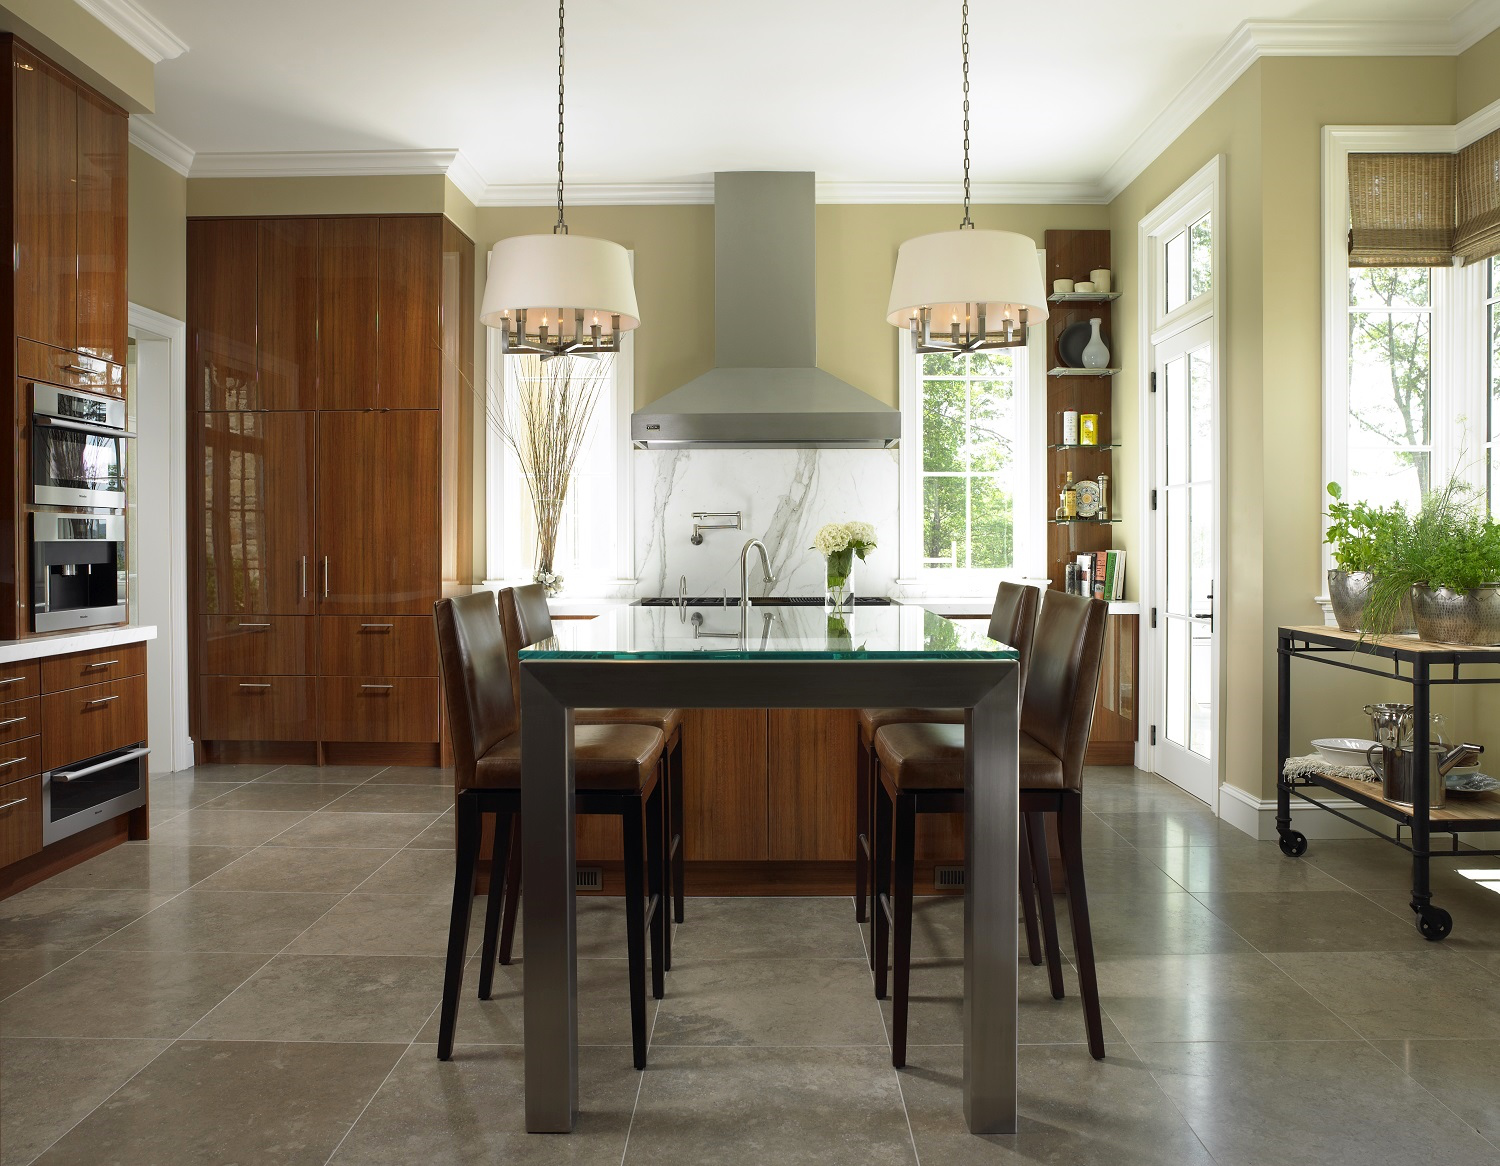 Clean lines and a mix of sleek surfaces in a New York kitchen by Jill Shevlin Design